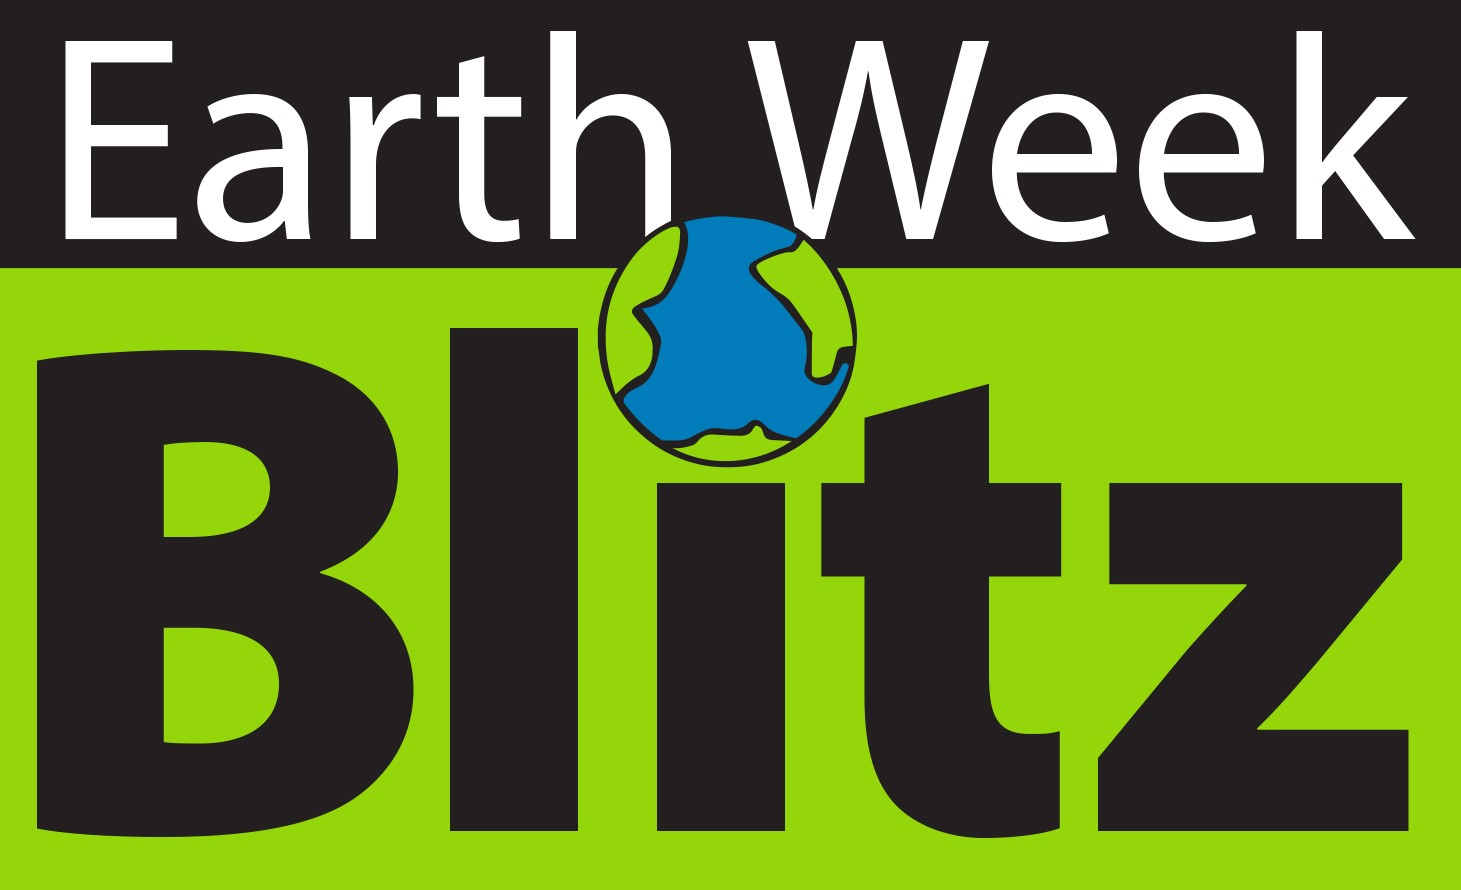 Earth Week Blitz generic logo